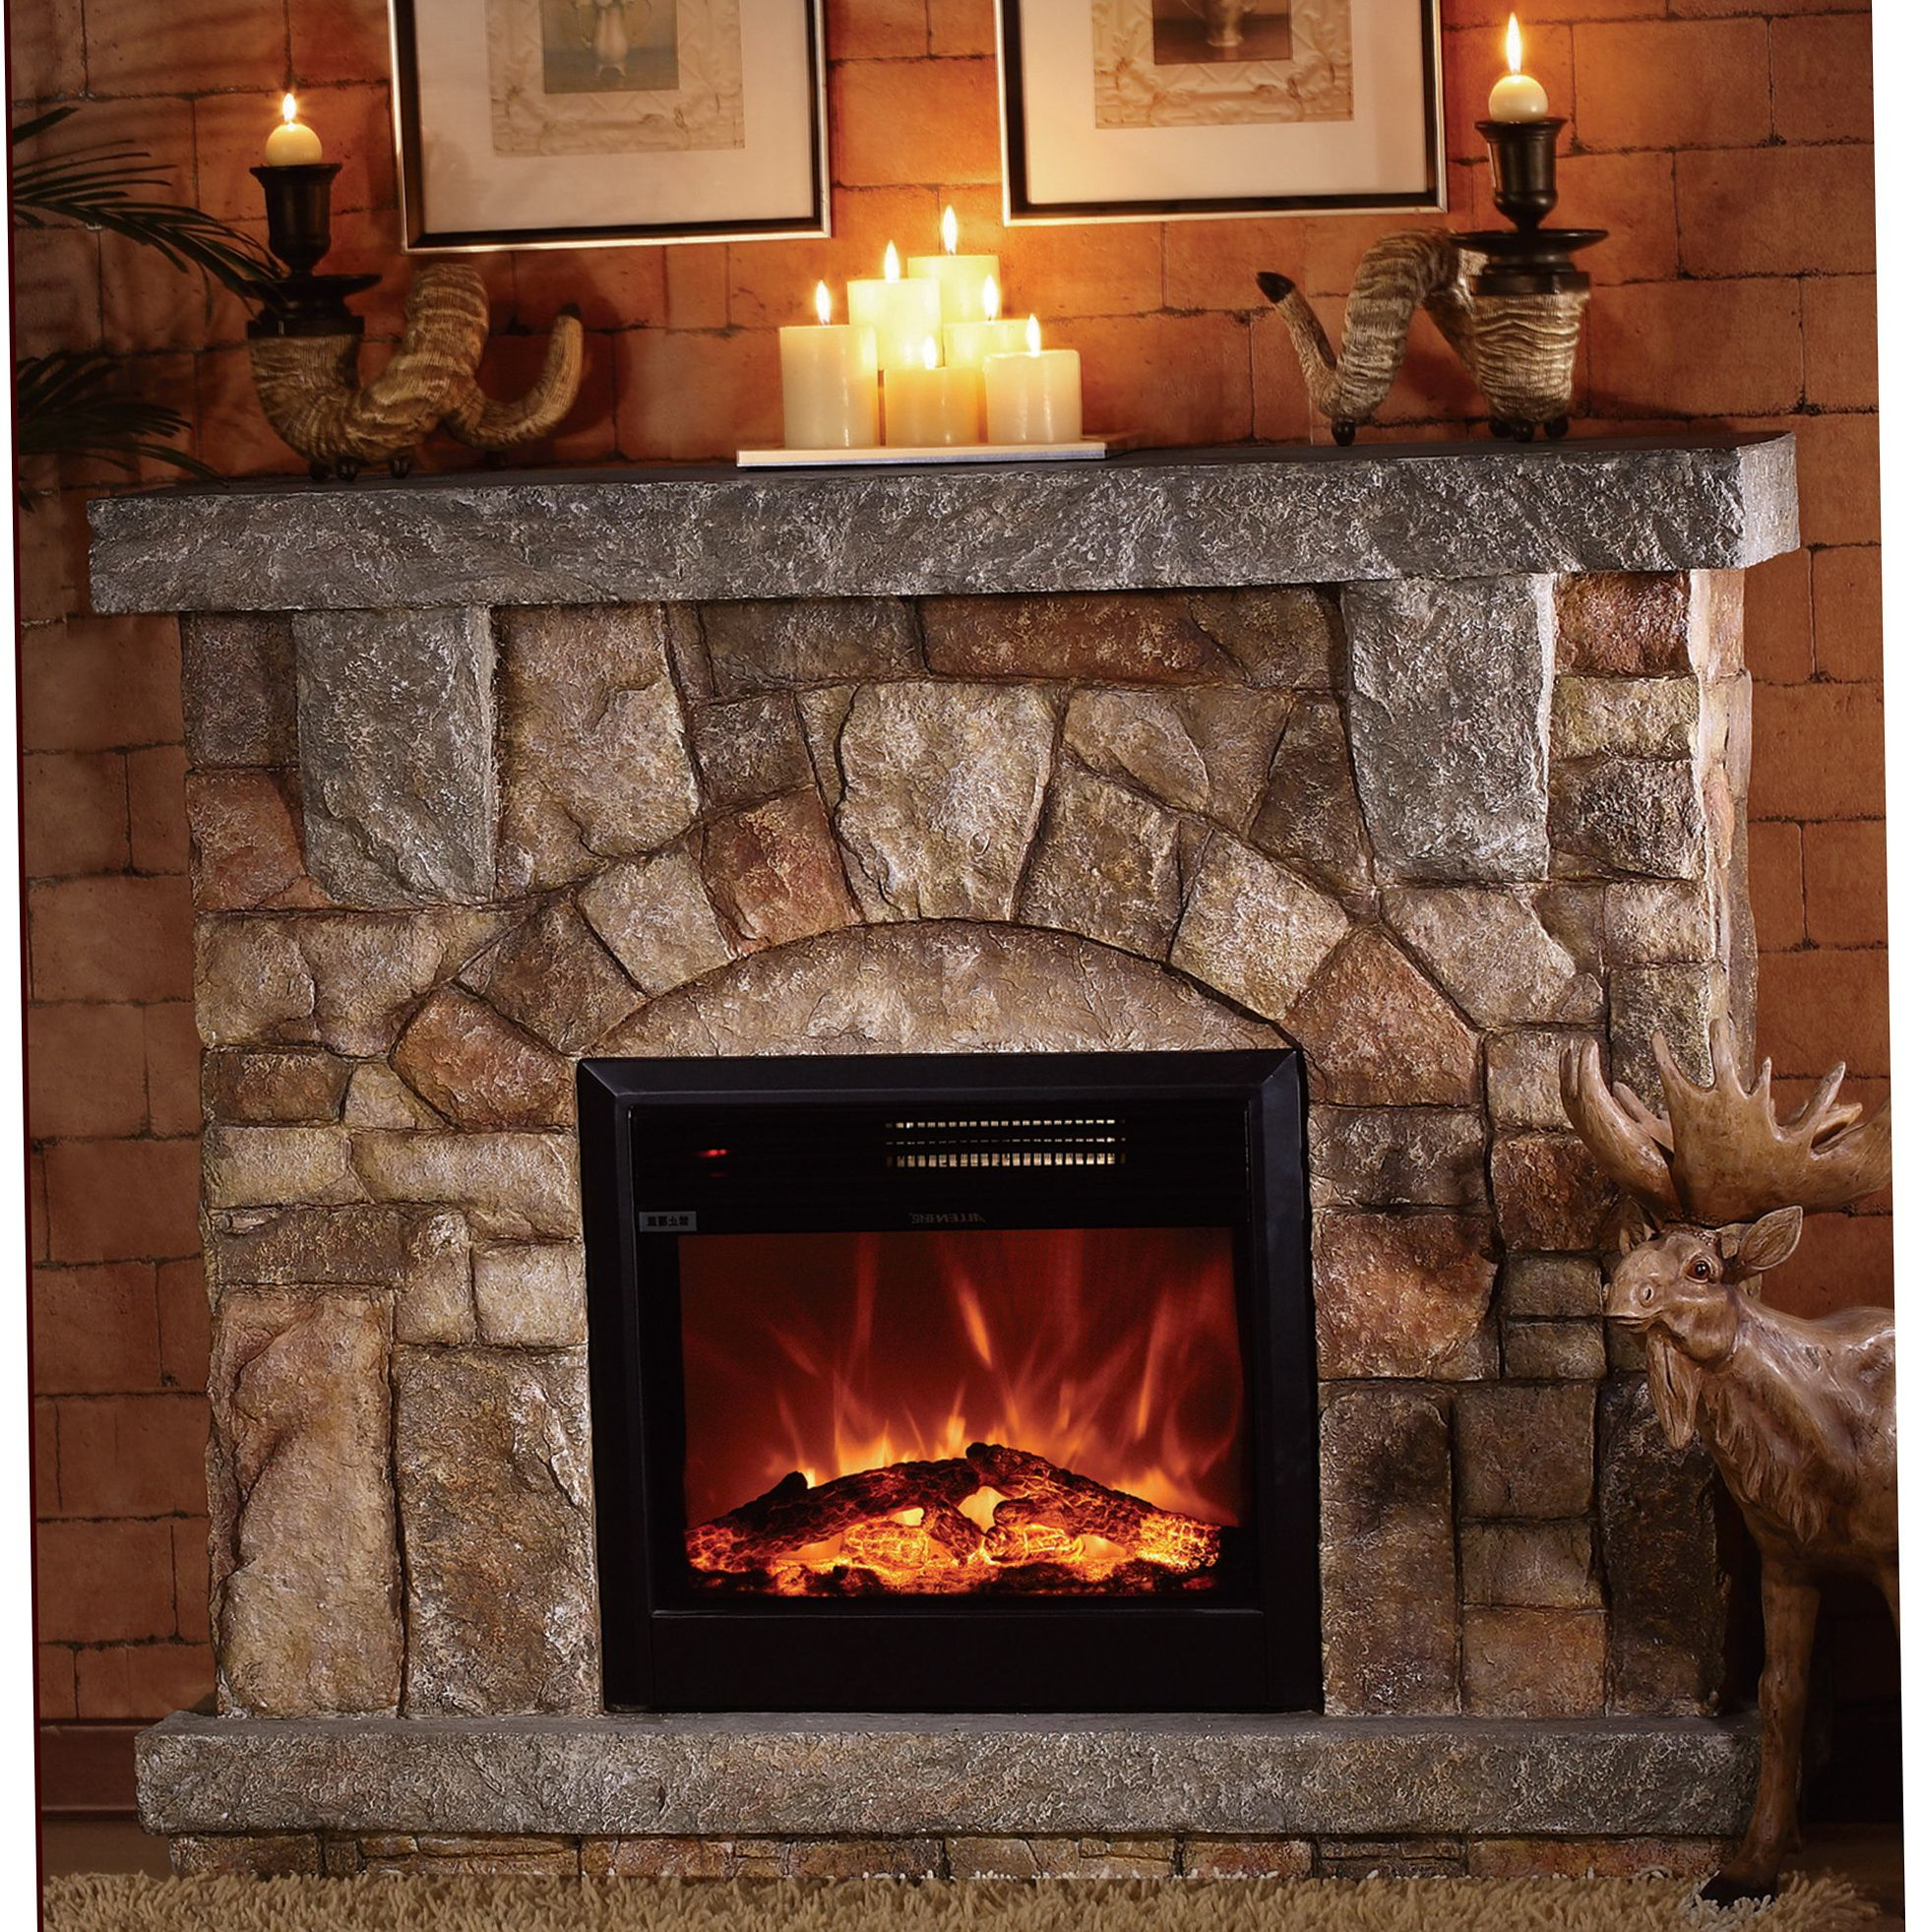 Depiction Of Stone Electric Fireplace For Modern Rustic Home Designs Stone Electric Fireplace Electric Fireplace With Mantel Electric Fireplace